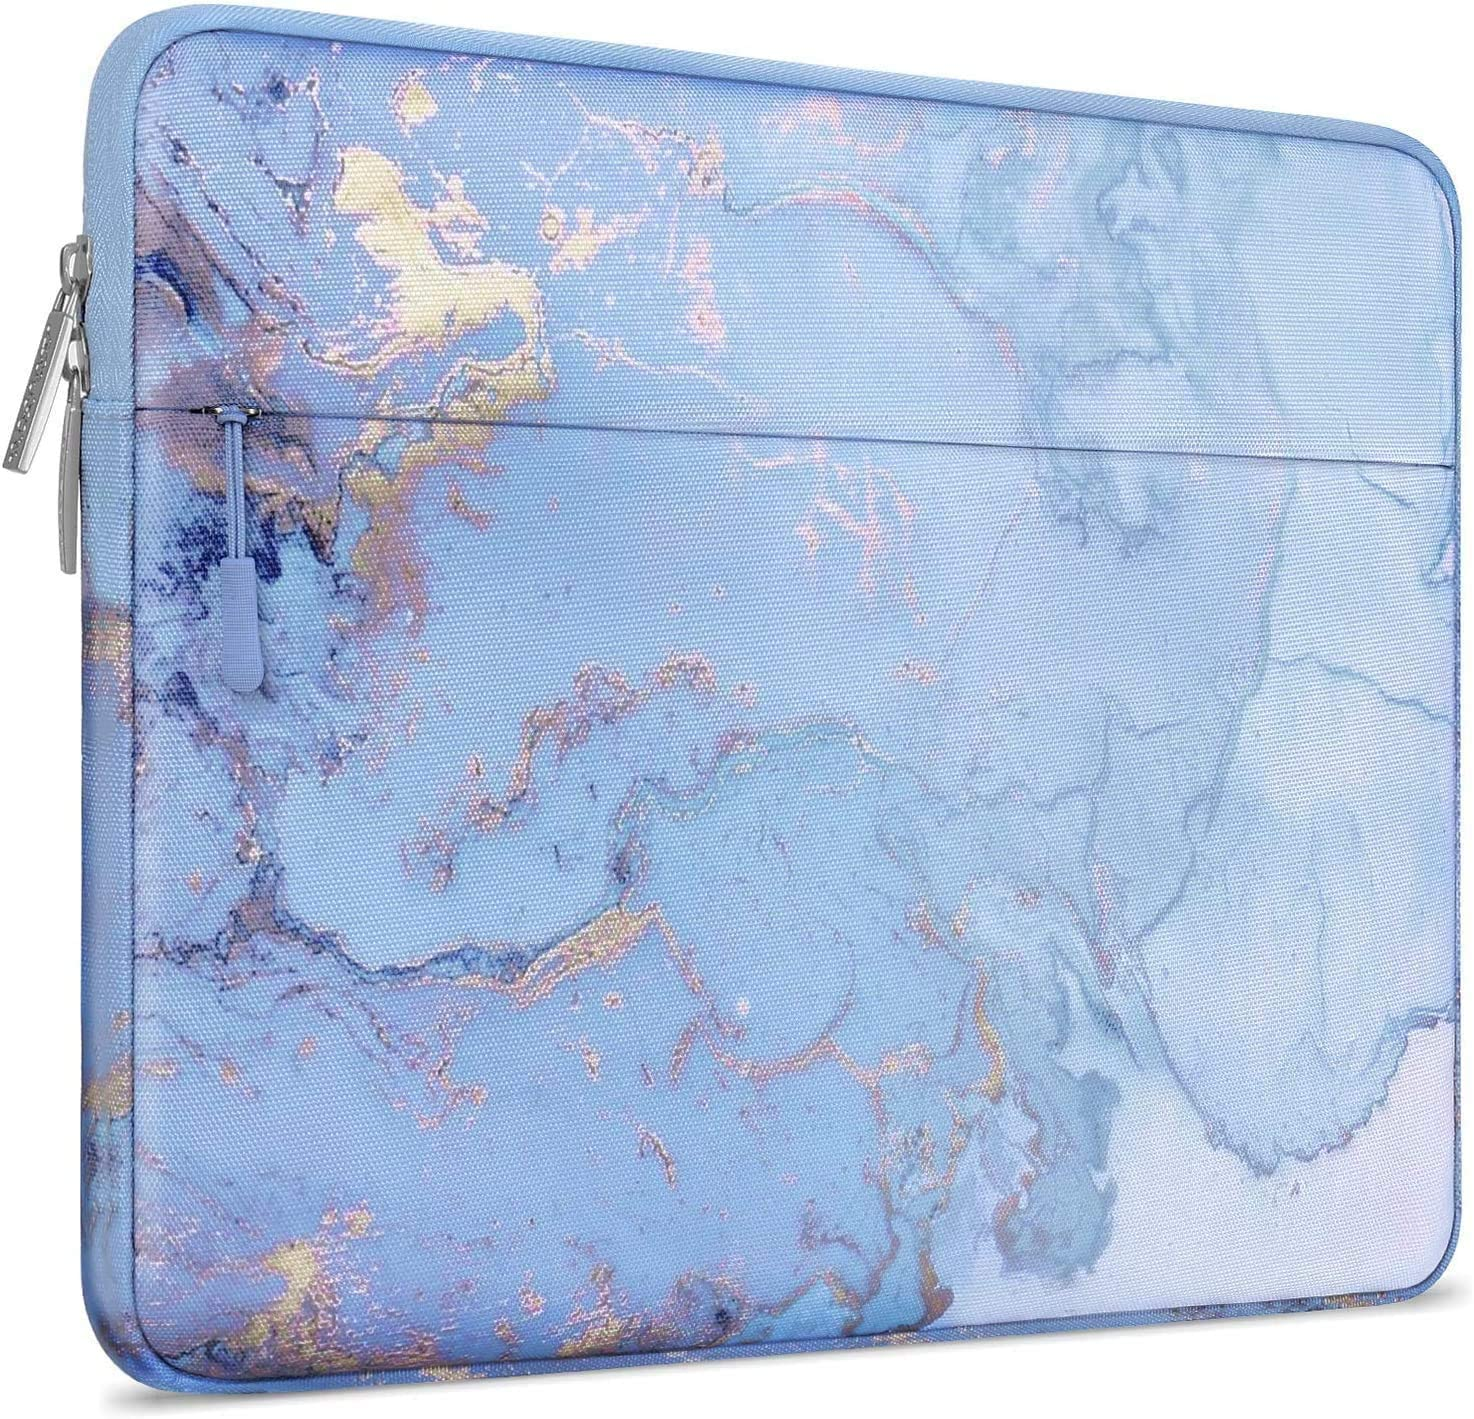 MOSISO Laptop Sleeve Compatible with 2019 MacBook Pro 16 inch Touch Bar A2141, 15-15.6 inch MacBook Pro Retina 2012-2015, Notebook, Polyester Horizontal Watercolor Marble Bag